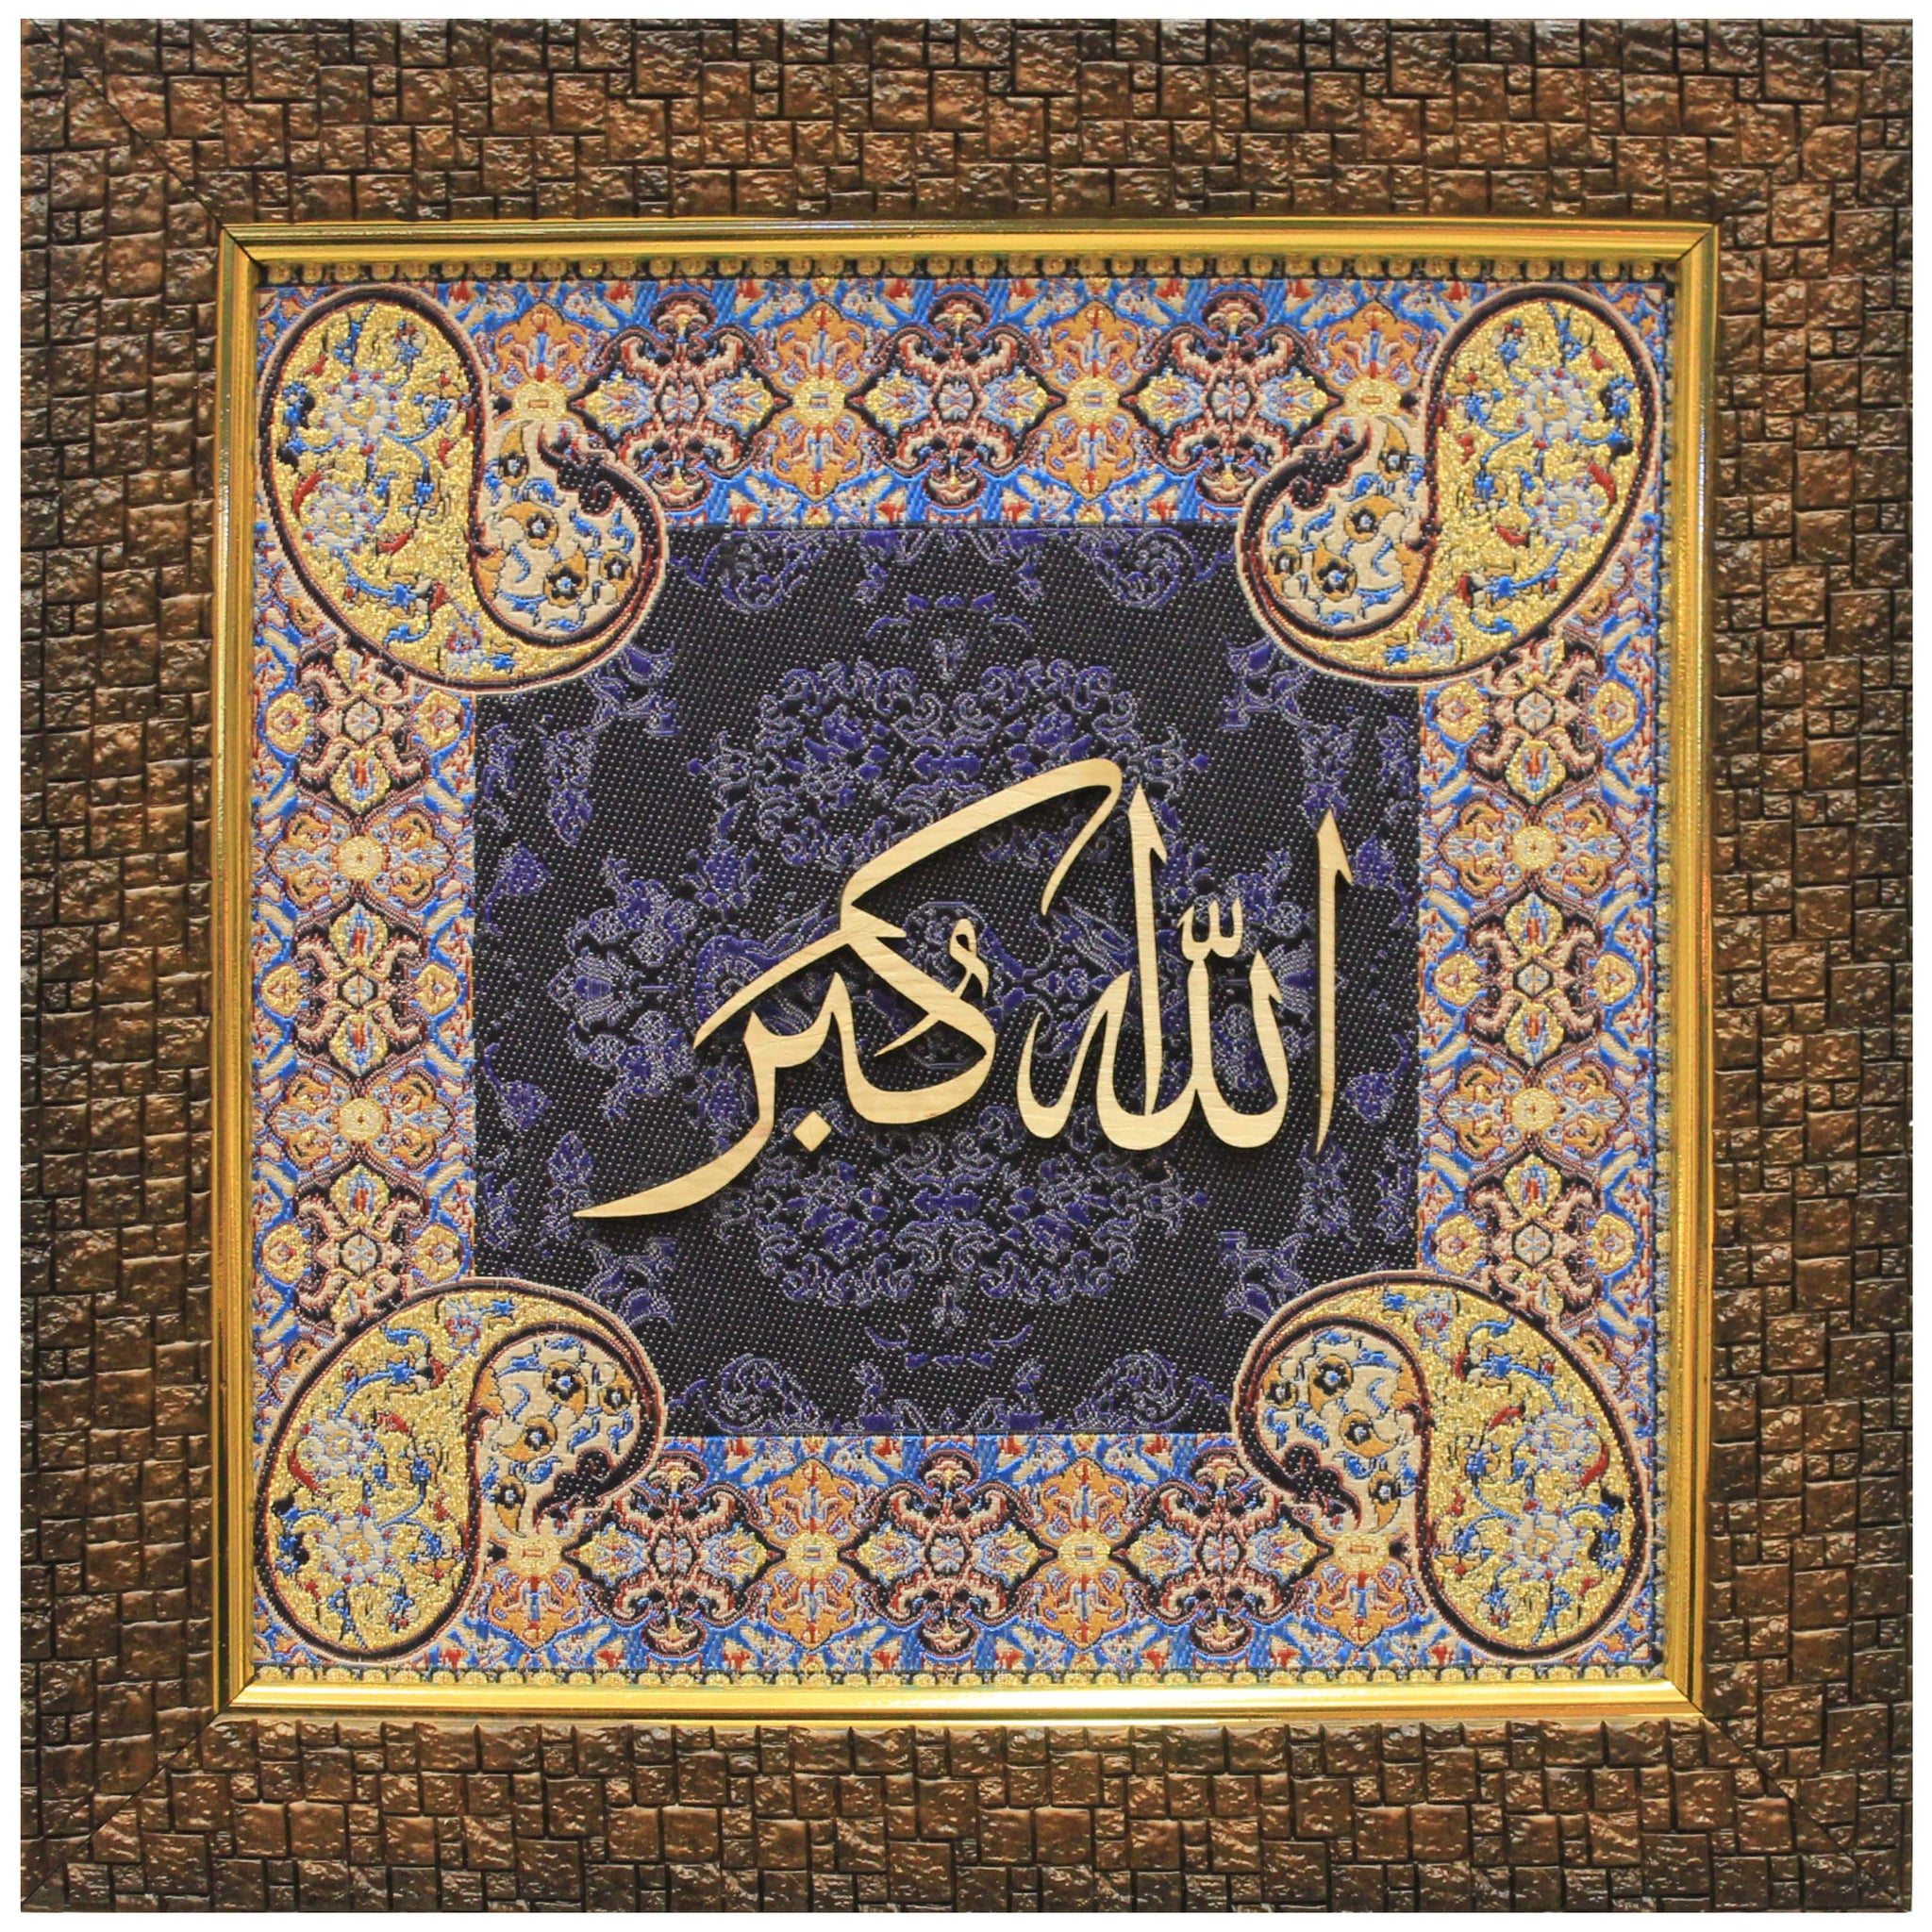 Allahu Akbar, Carved Wood on Blue Terhan Silk Arabic Calligraphy